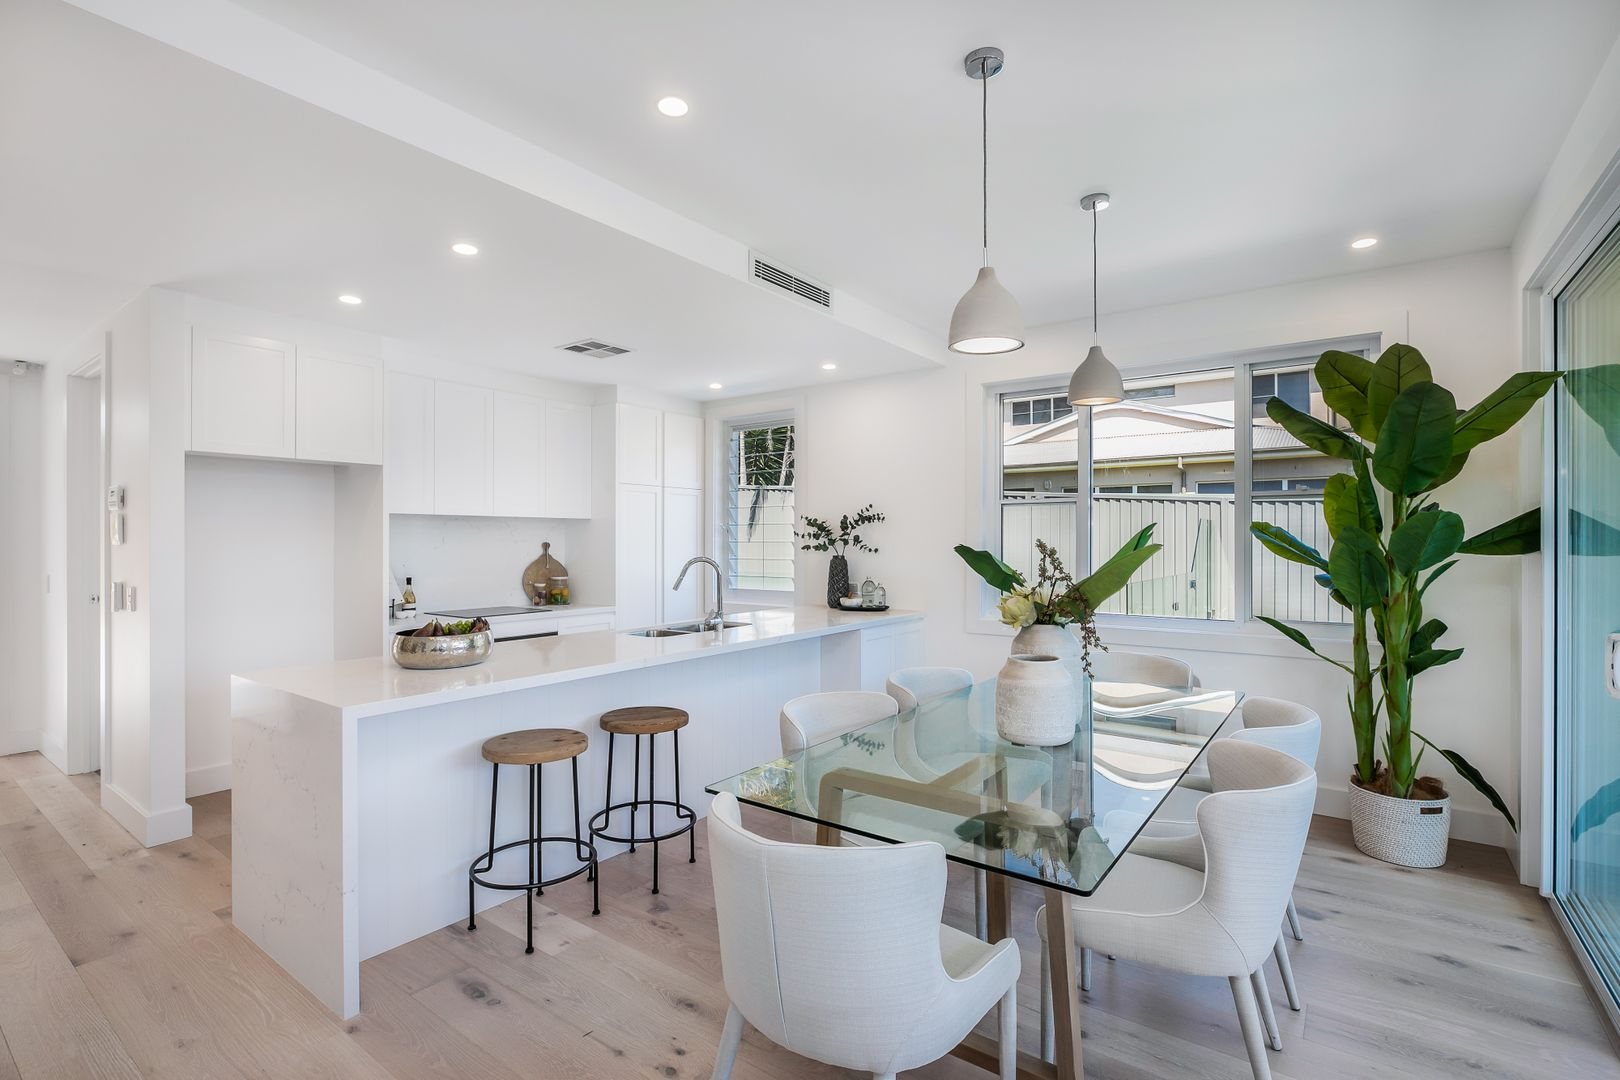 4/103 Gannons  Road, Caringbah South NSW 2229, Image 1